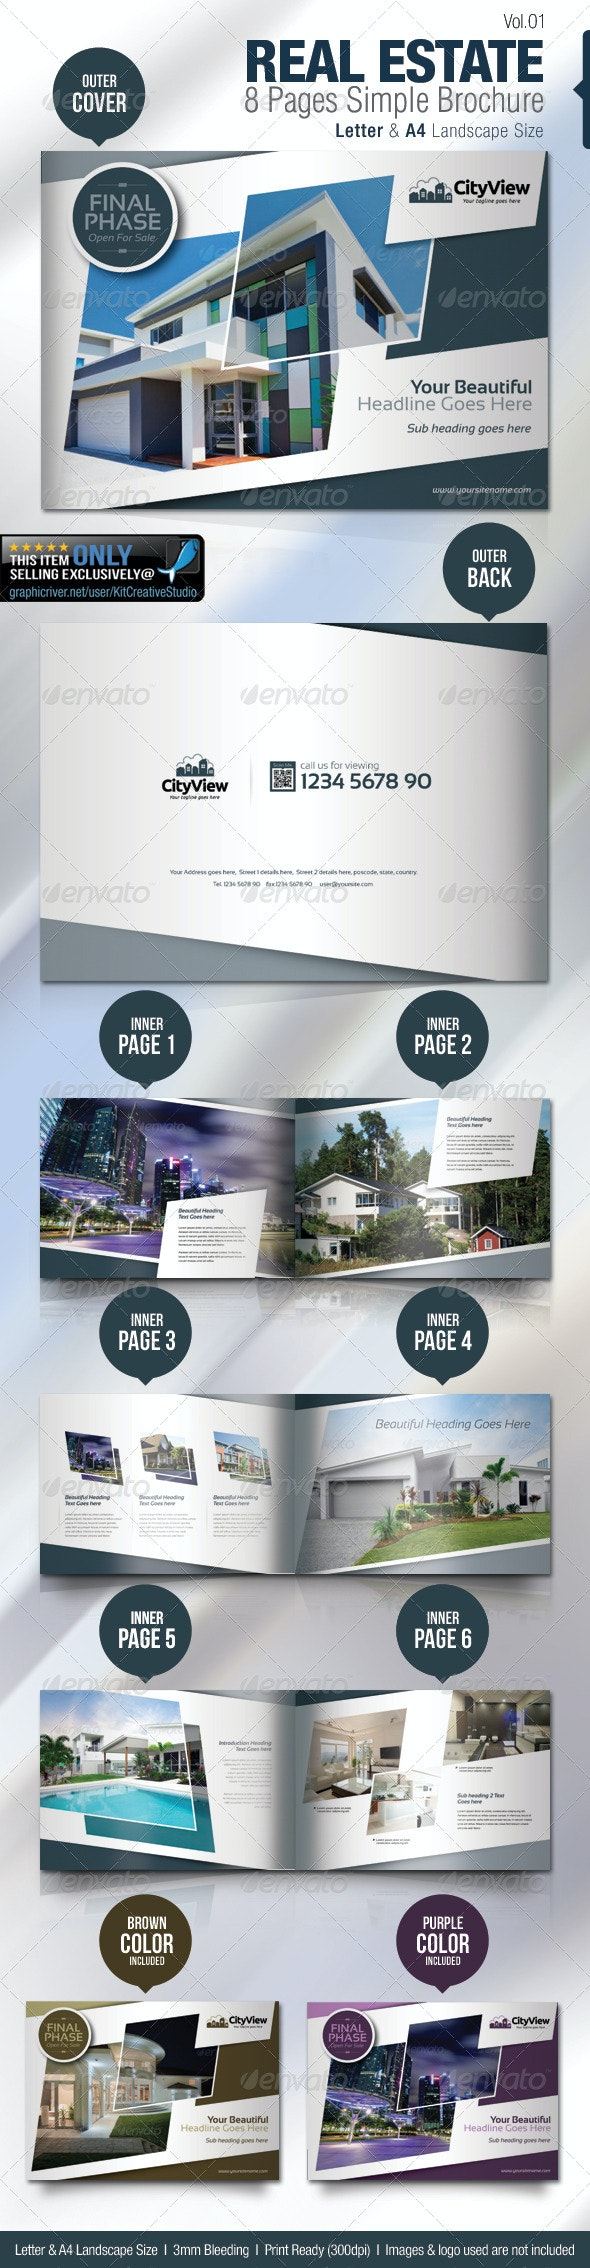 Real Estate 8 Pages Simple Brochure - Brochures Print Templates